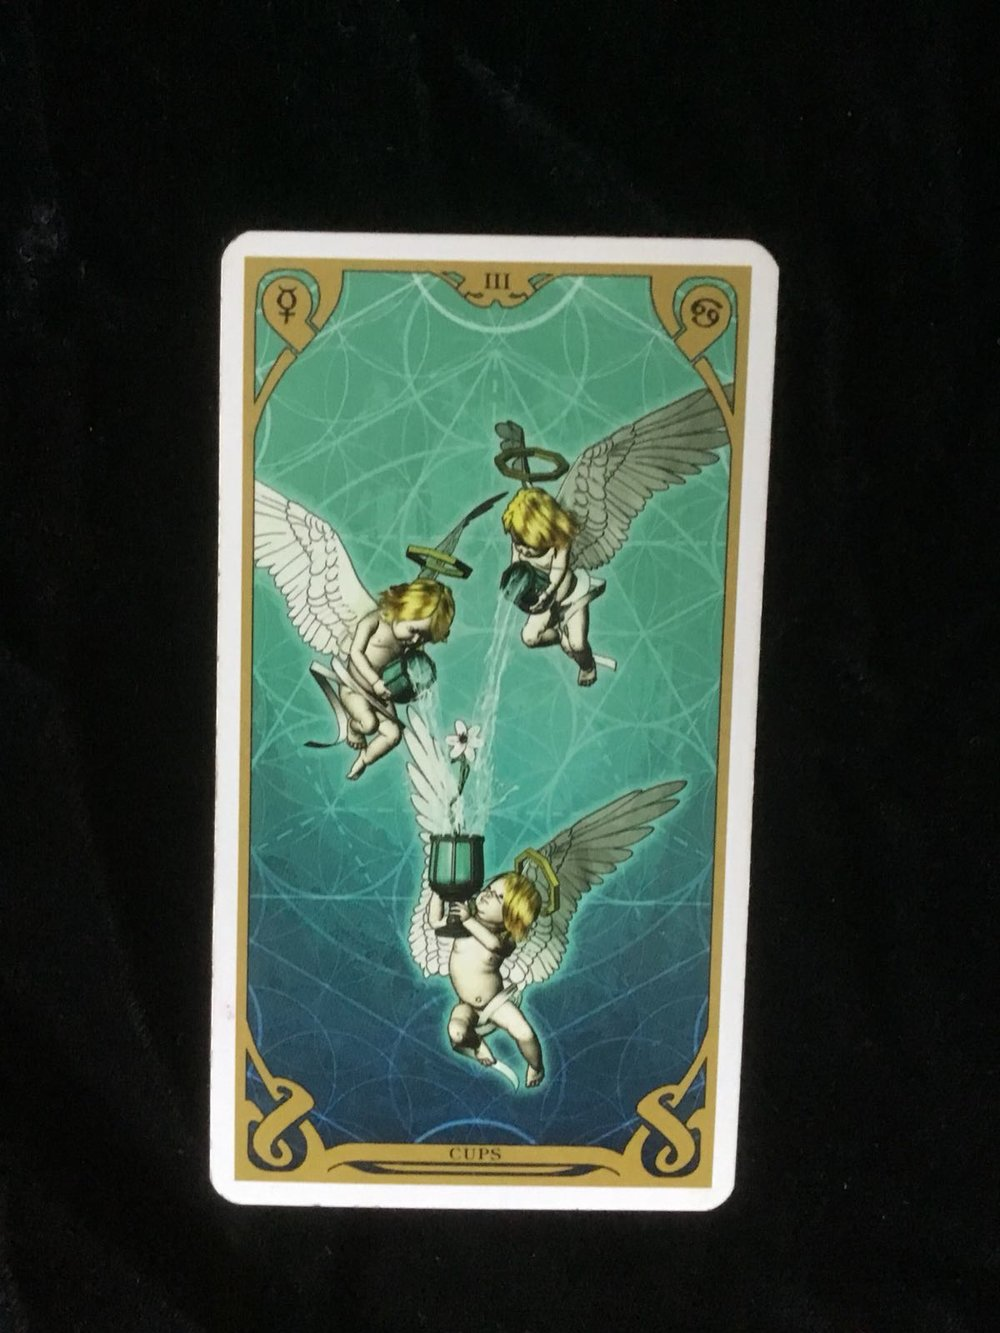 The Three of Cups - This card can represent community - the network of support created when we interact with others.